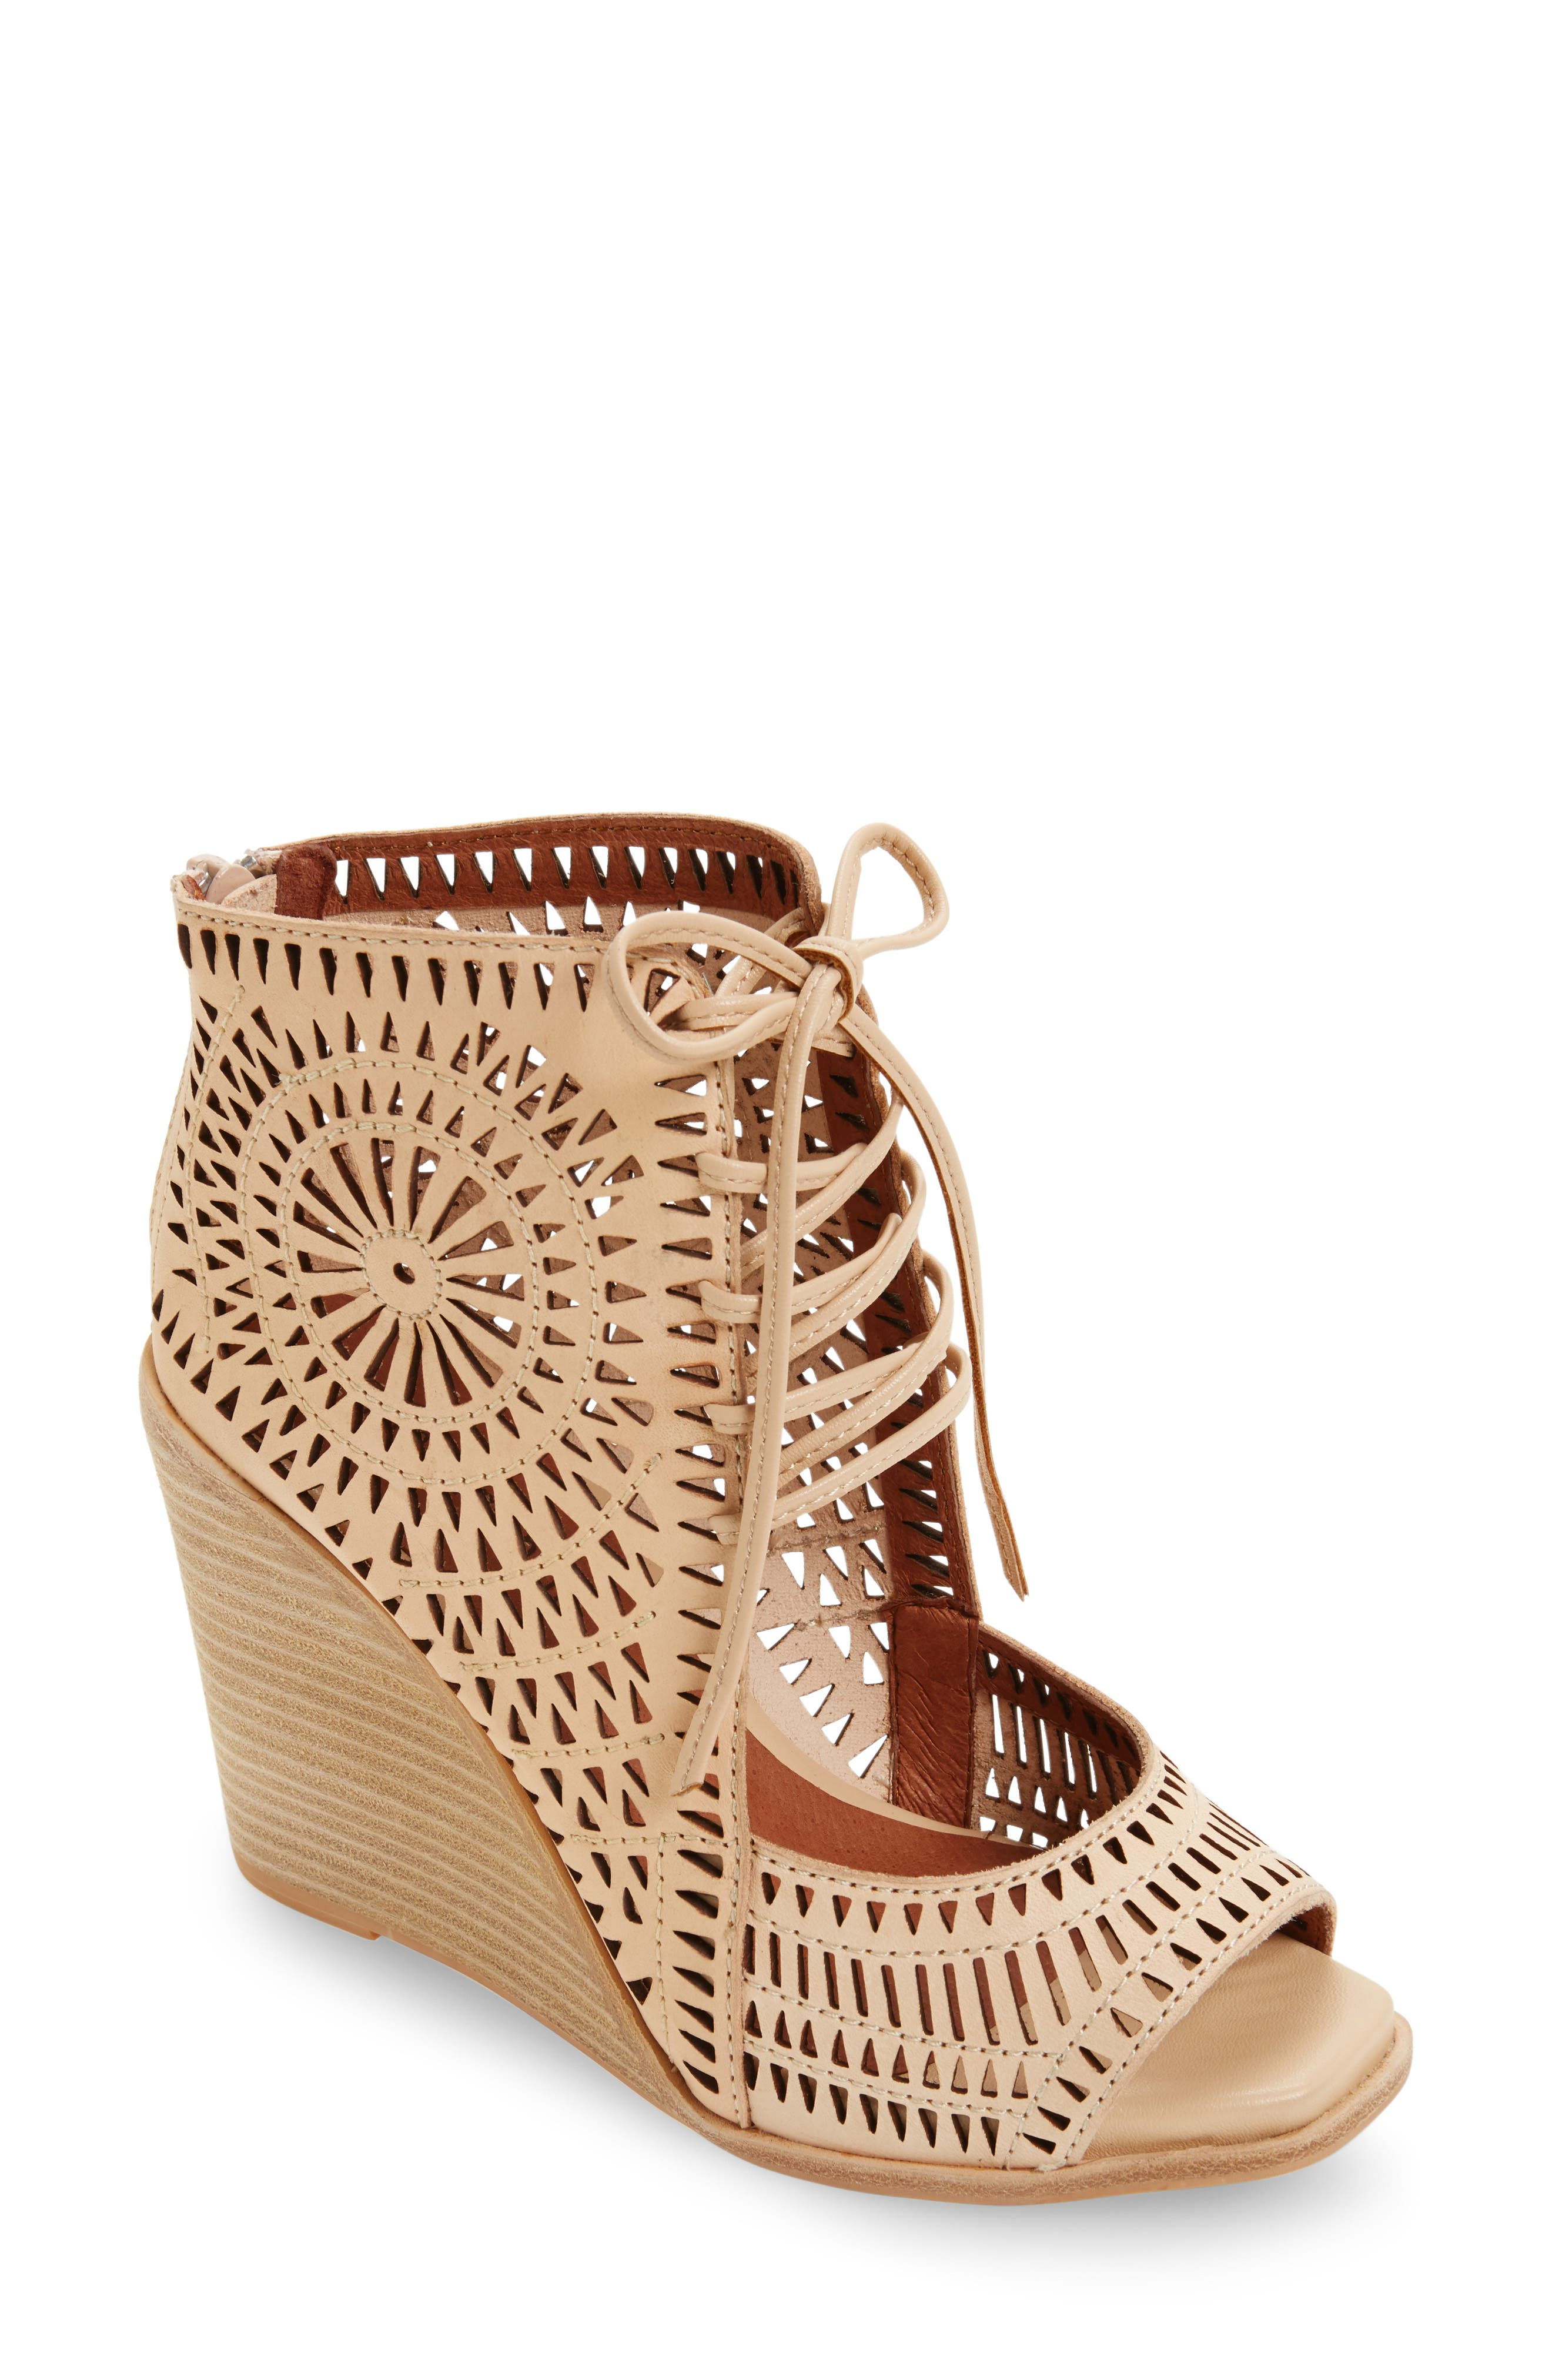 Main Image - Jeffrey Campbell Rayos Perforated Wedge Sandal (Women)